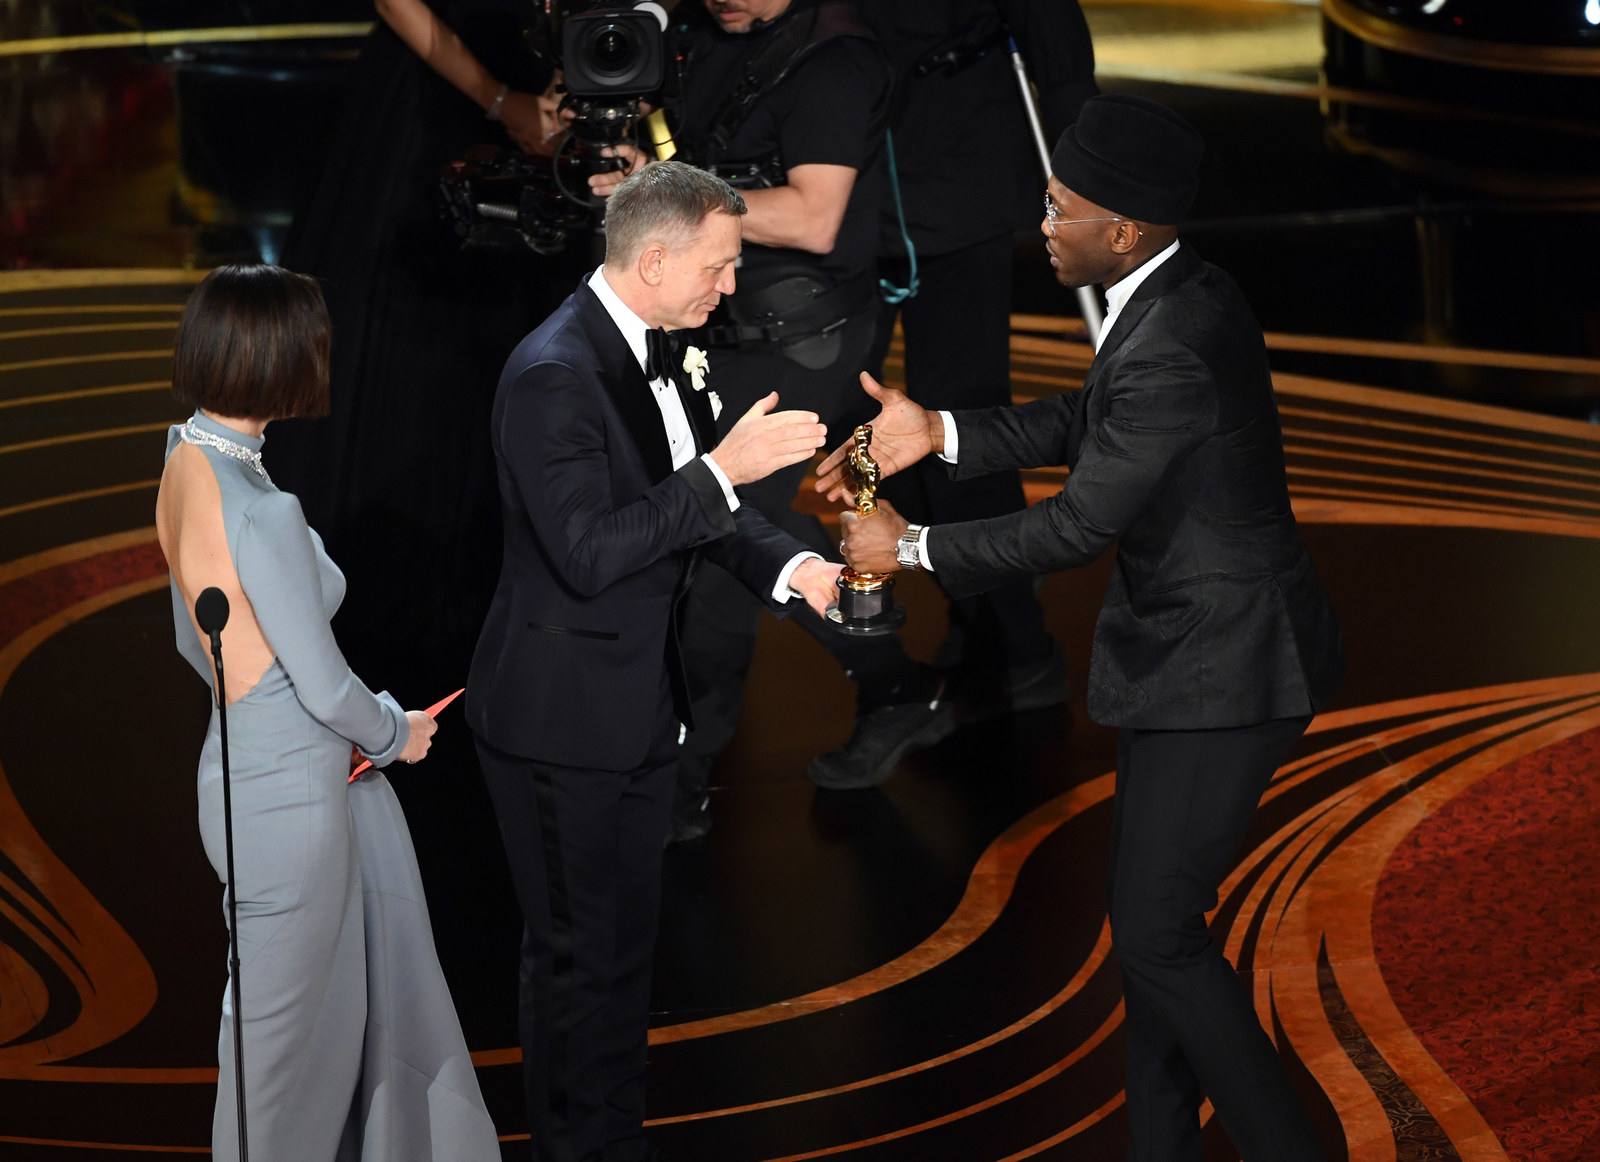 And to accept his award, my mans was wearing a Jinnah cap with his suit.